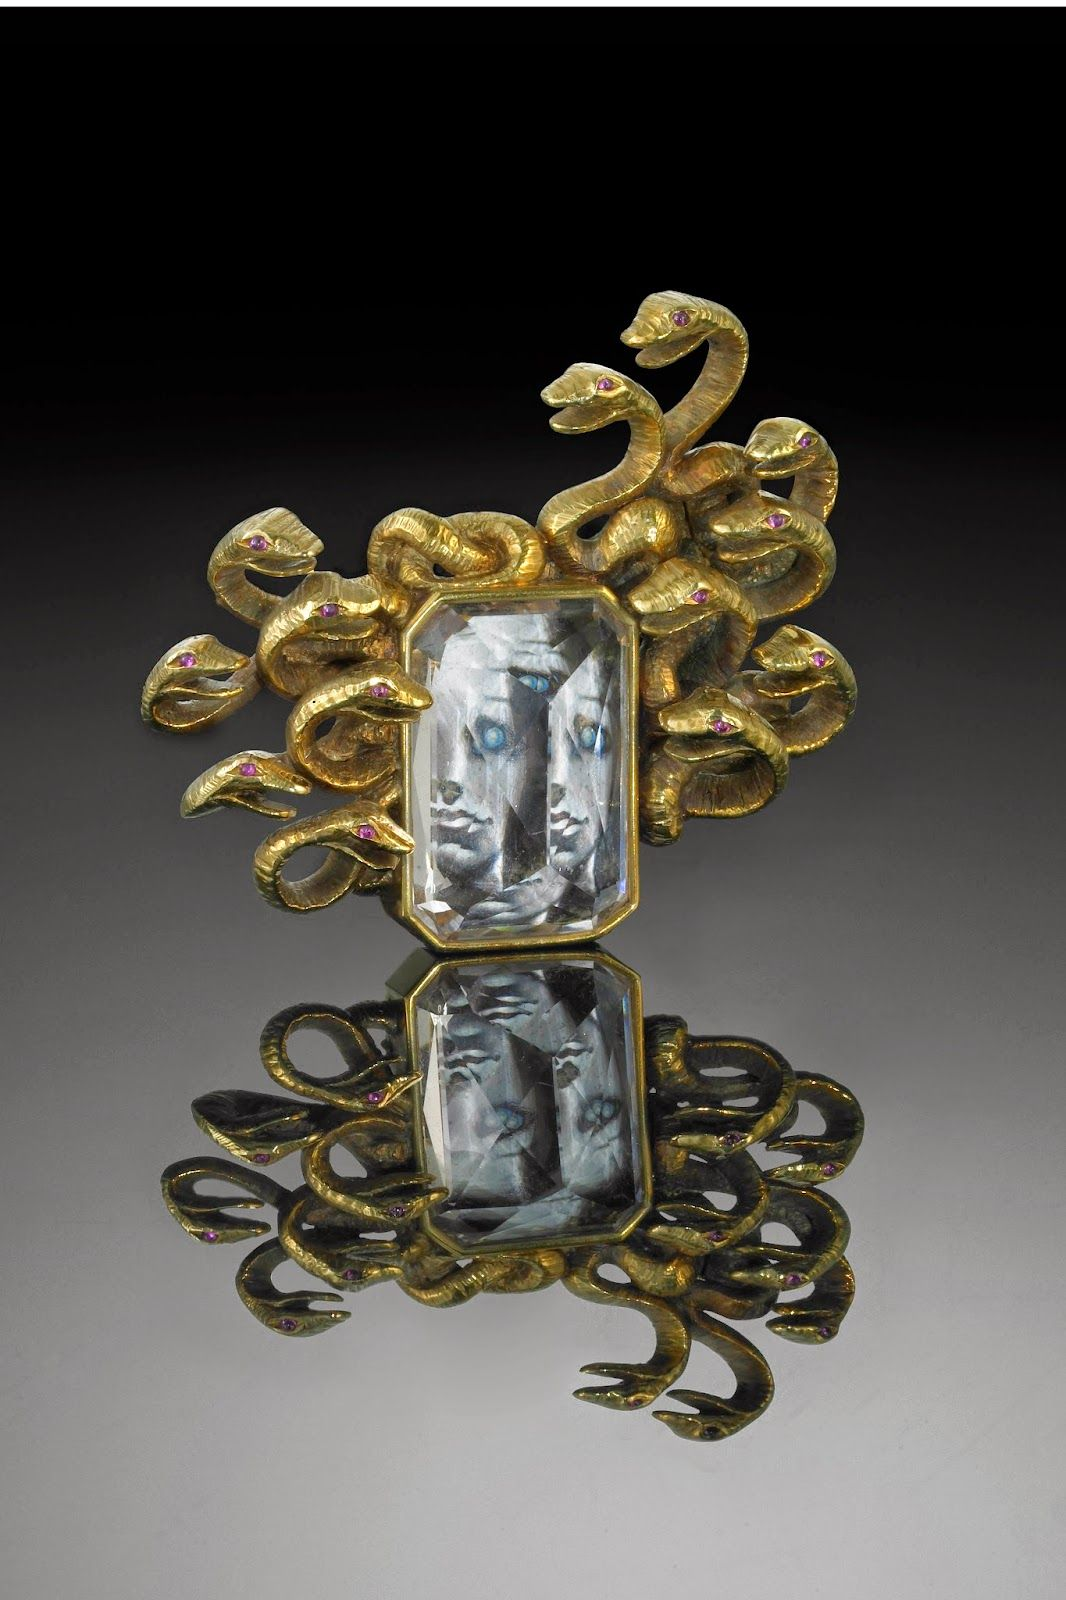 """""""Medusa"""" Brooch, created by Verdura in collaboration with Salvador Dalí, 1941. Made of gold, morganite and ruby, it frames a miniature painting  of Medusa by Dali. #VintageBrooch #Verdura"""